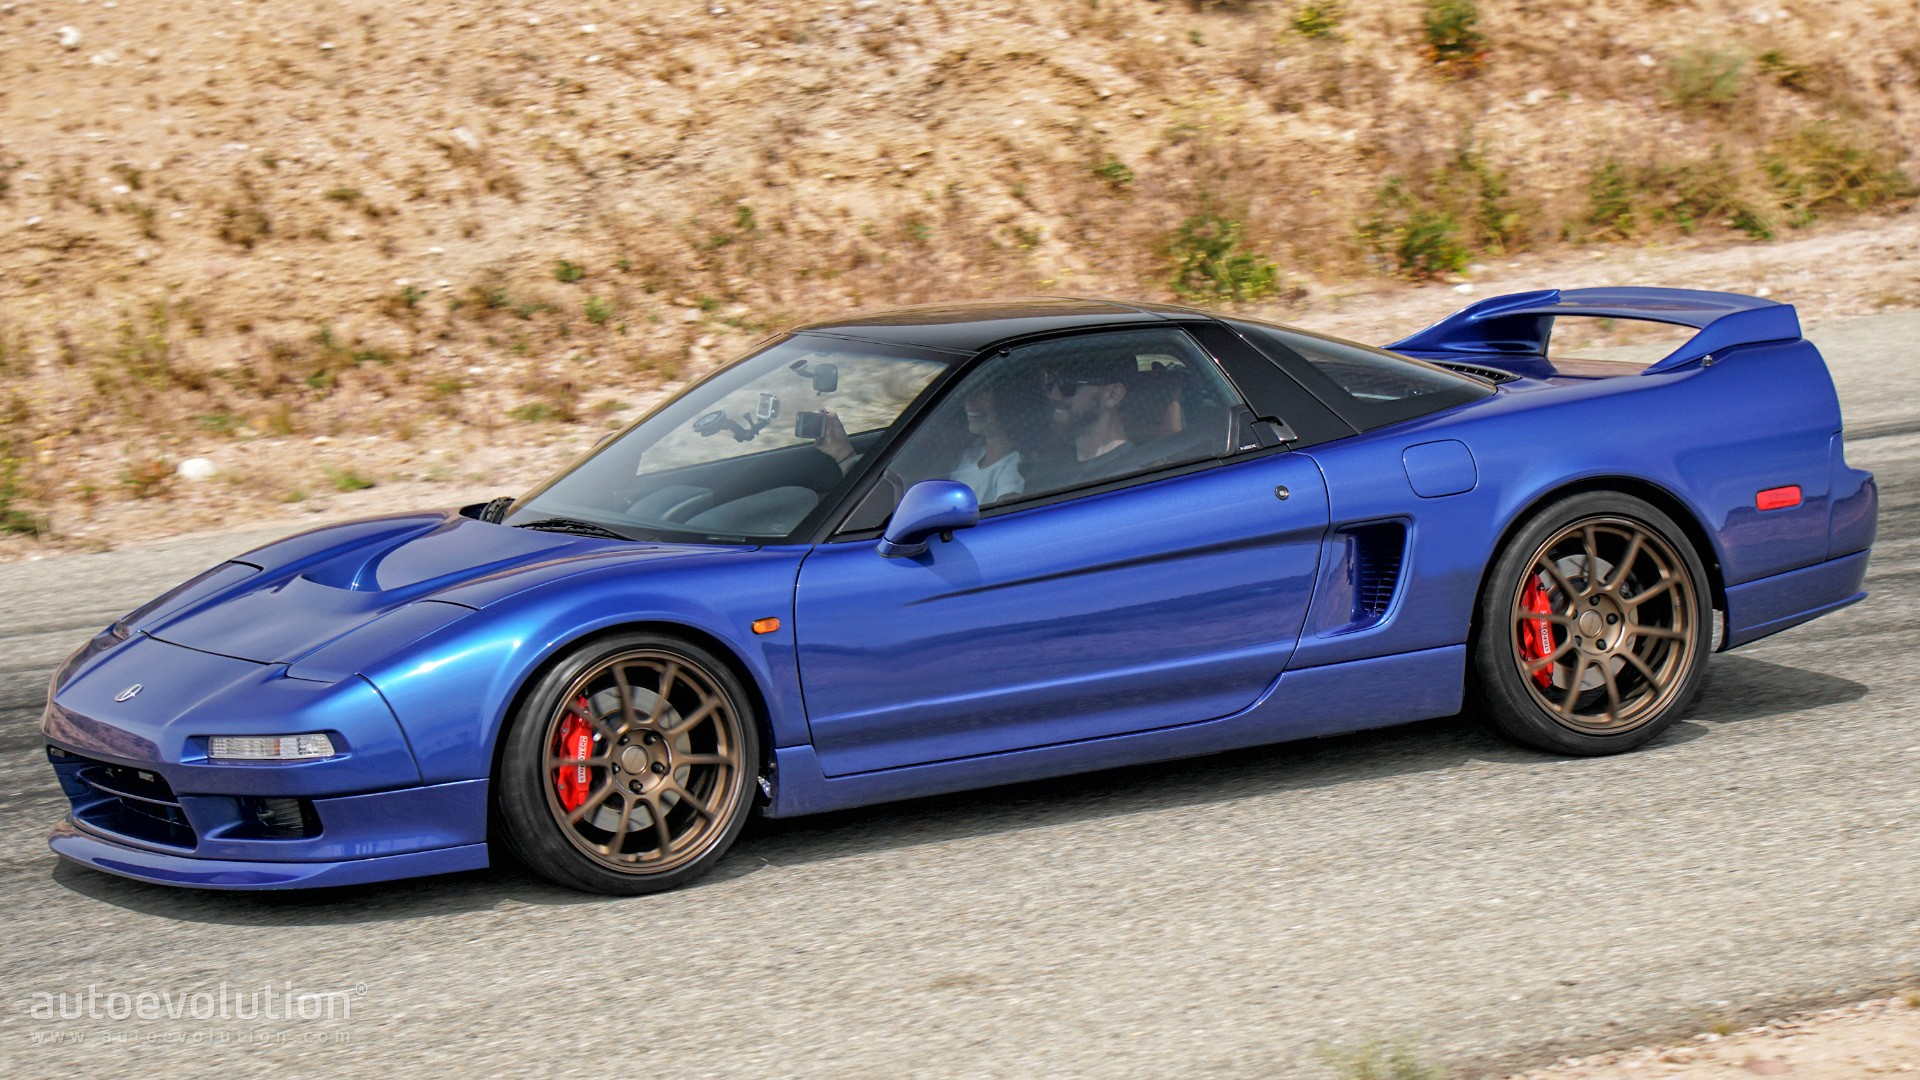 clarion builds resurrects and improves a 1991 acura nsx autoevolution rh autoevolution com